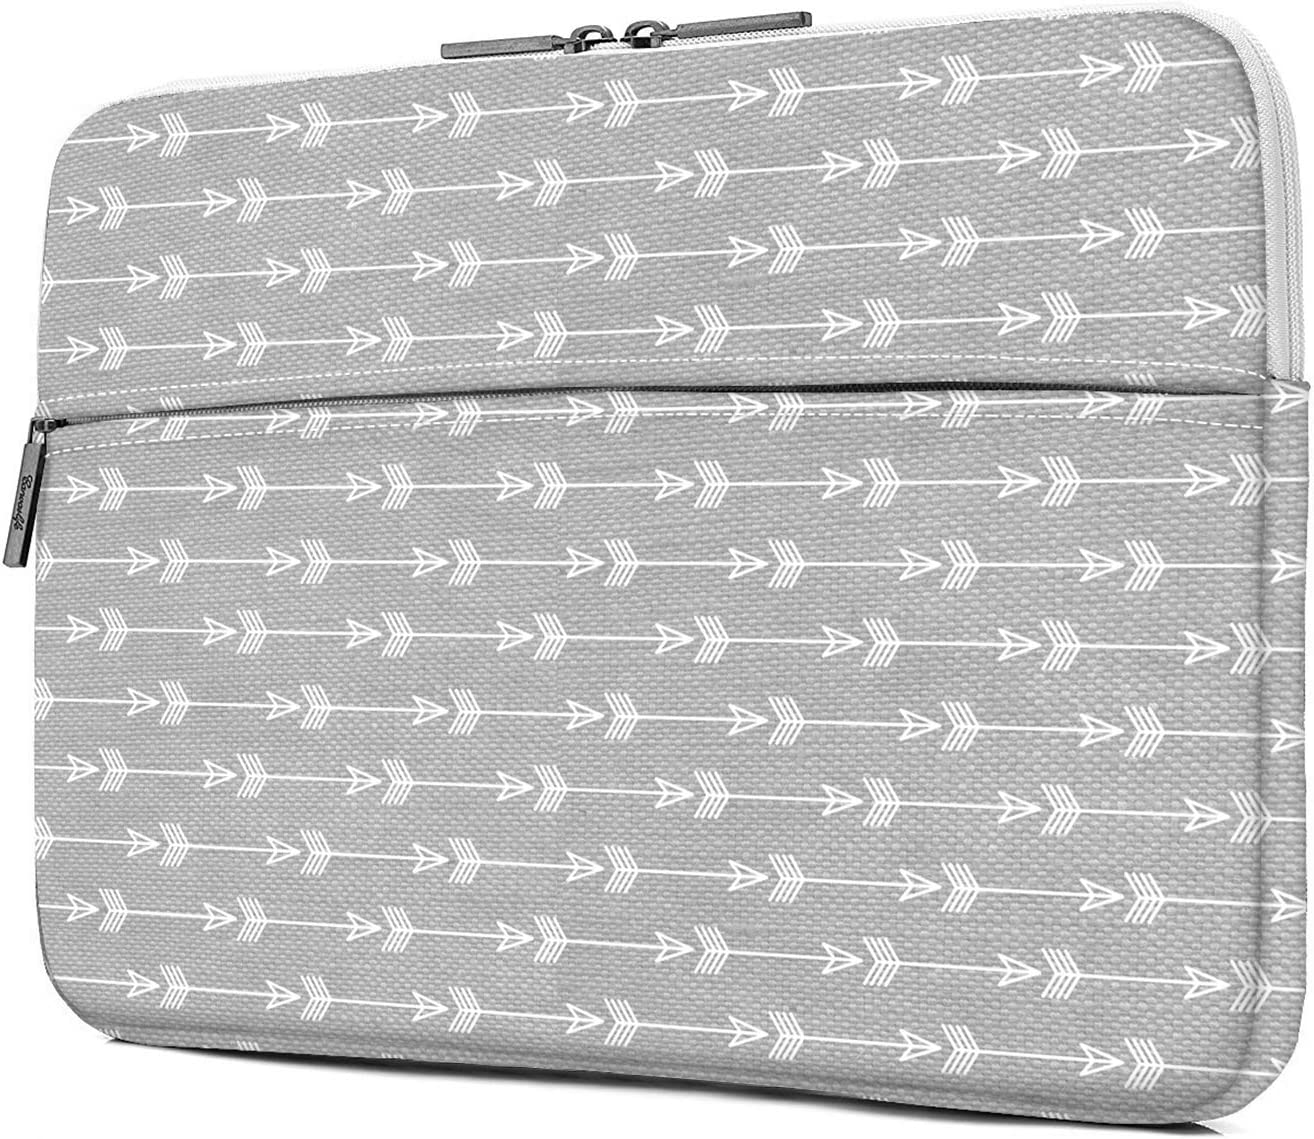 iLeadon 13 inch Laptop Sleeve with Pocket, Grey Arrow Pattern Canvas Laptop Carrying Case Compatible 13.3 inch MacBook Air Pro Retina Surface Chromebook 12.9-inch iPad Pro Tablet Case, Gray Arrow